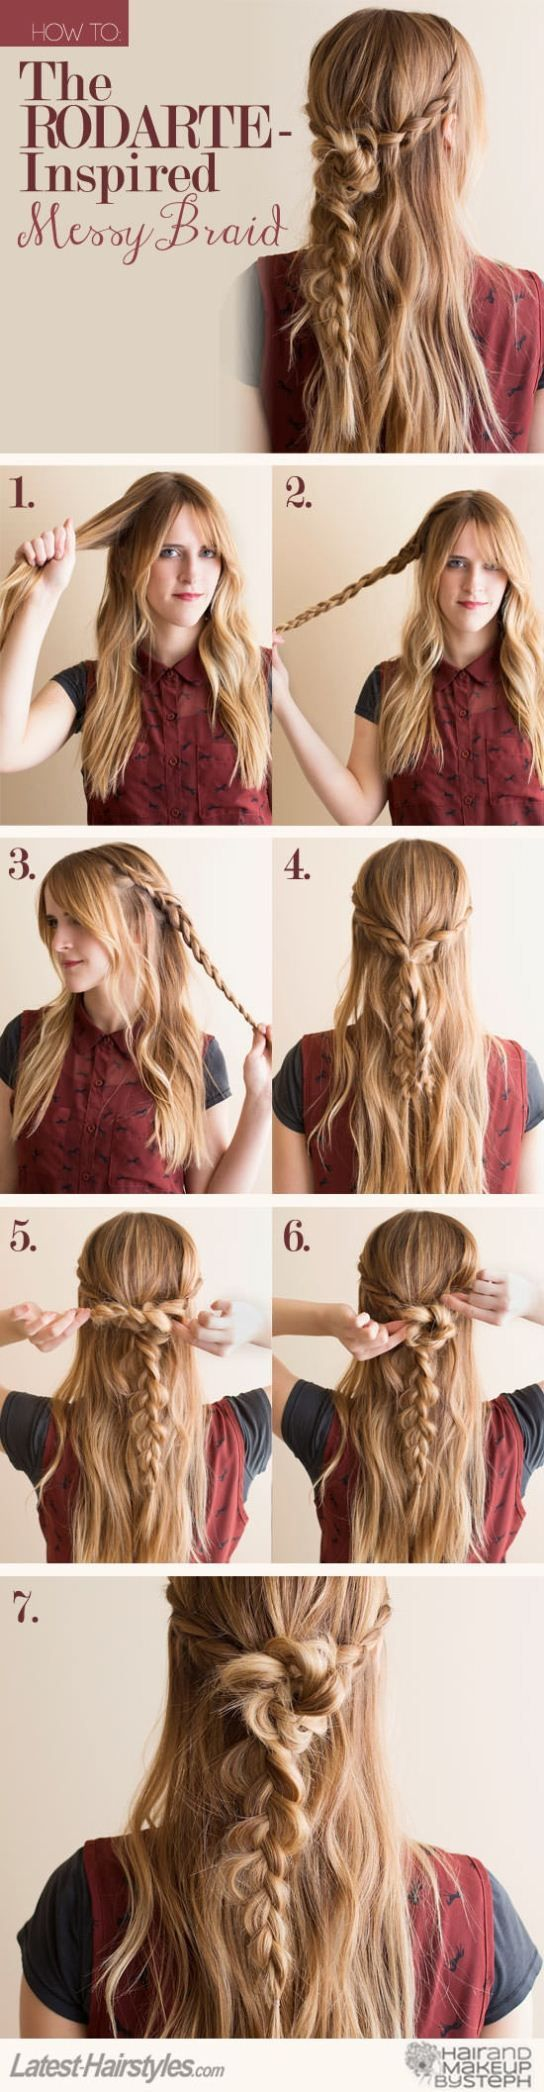 Fashion style Hair holiday tutorials pinterest for woman